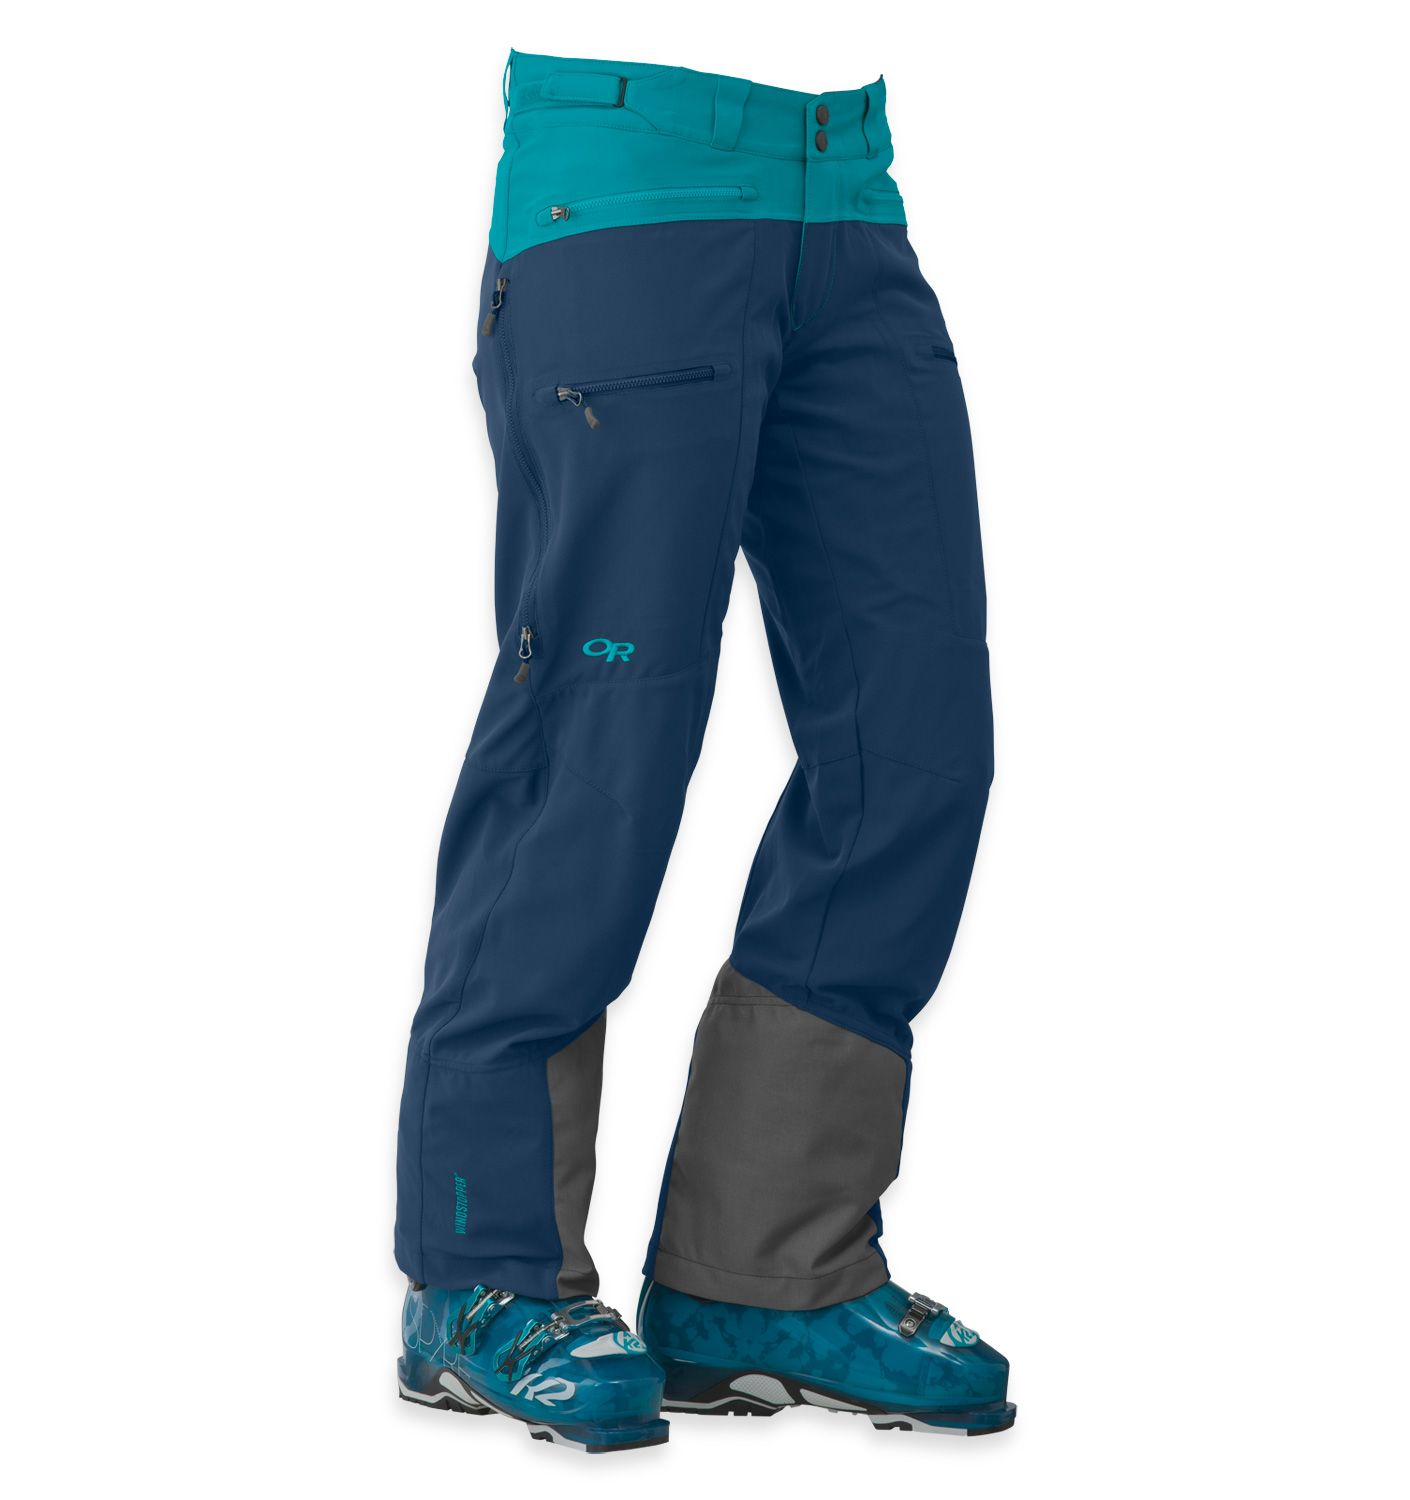 Women S Valhalla Pants Outdoor Research A Gore Windstopper Soft Shell Pant That Is Windproof Water Resistant And H Outdoor Outfit Pants Outdoor Research